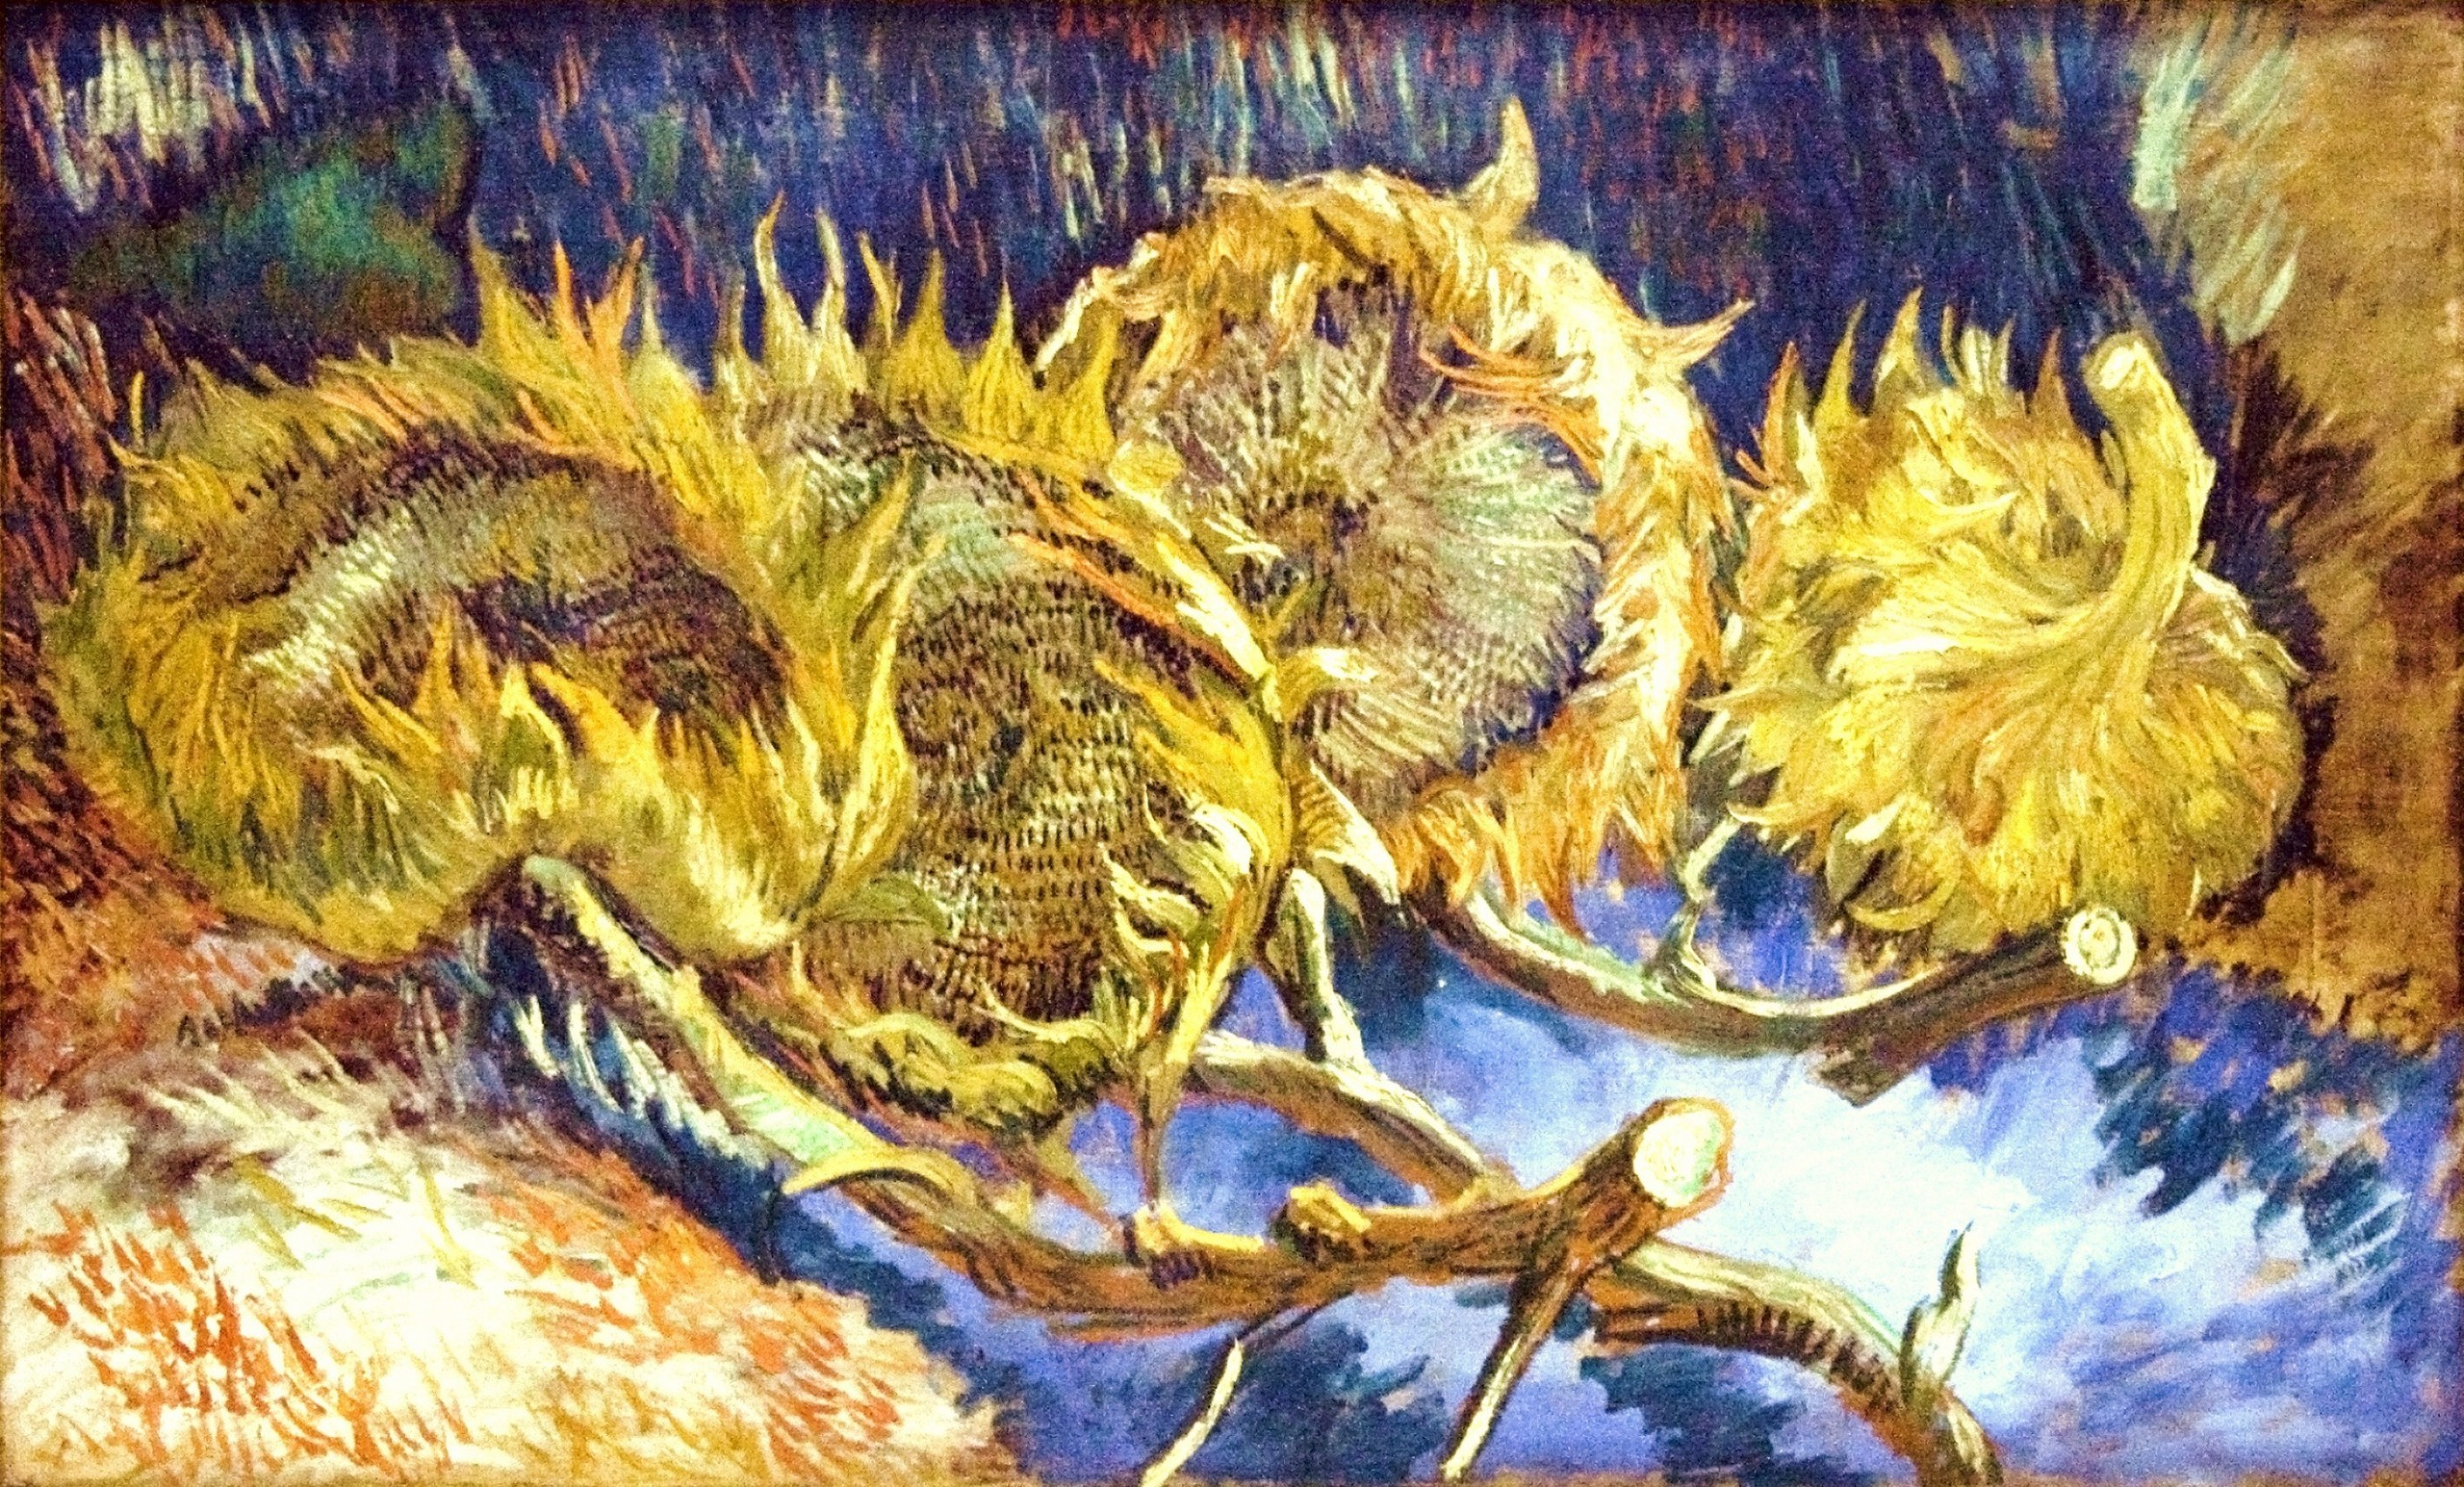 Cuadros De Vango Vincent Van Gogh Images Sunflowers Hd Wallpaper And